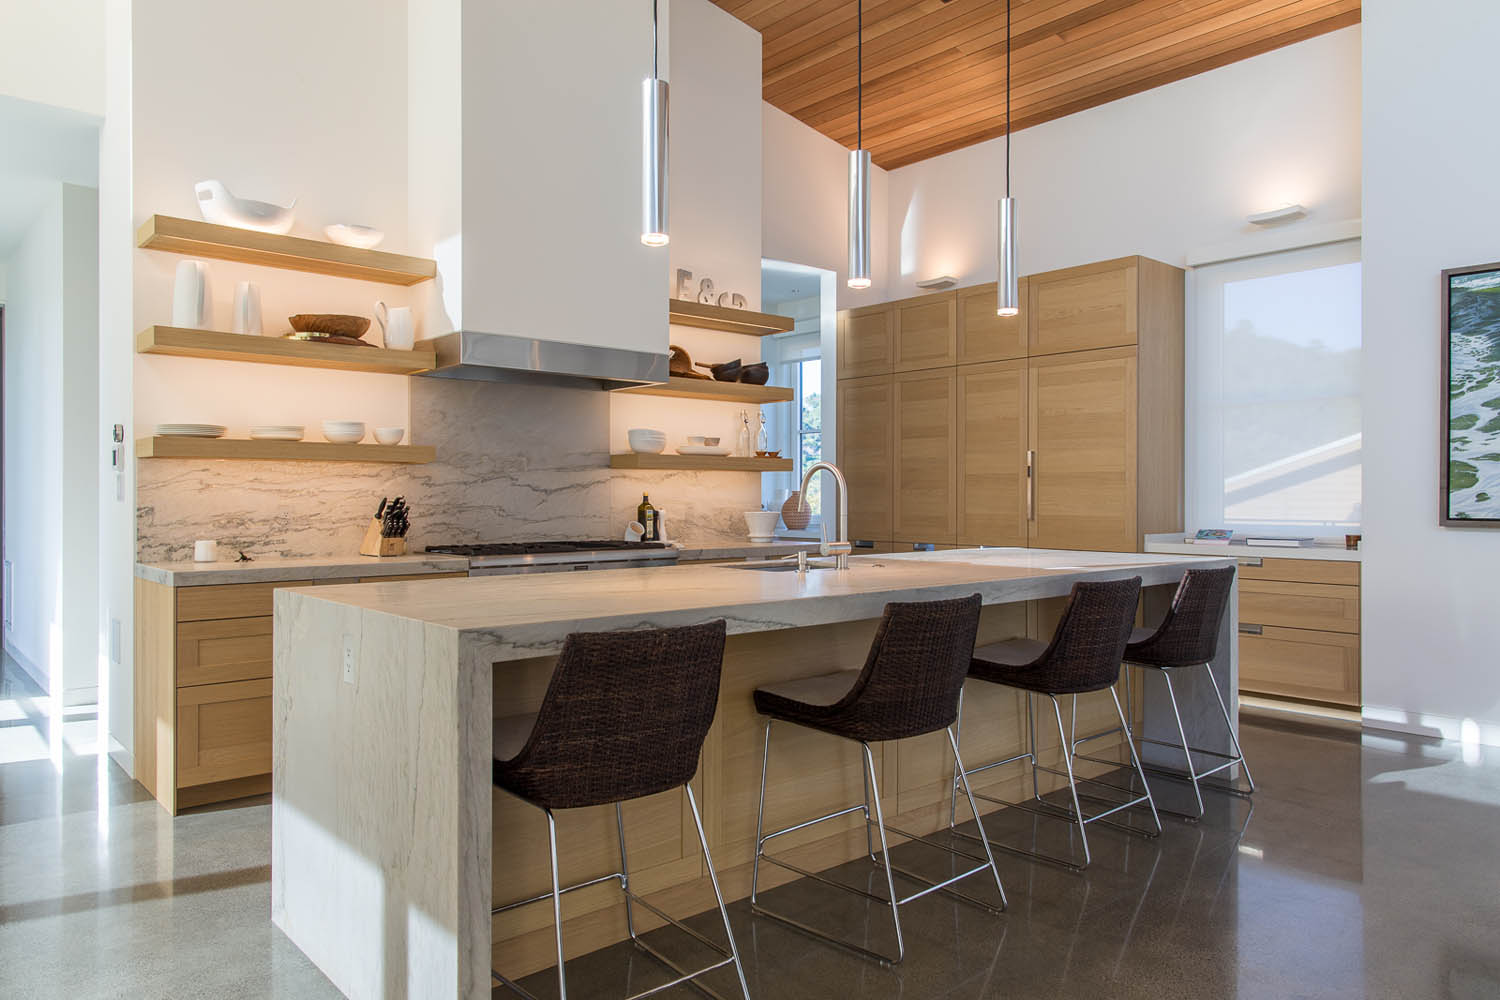 Tips For Renovating Your Kitchen According to Snaidero USA | Rue